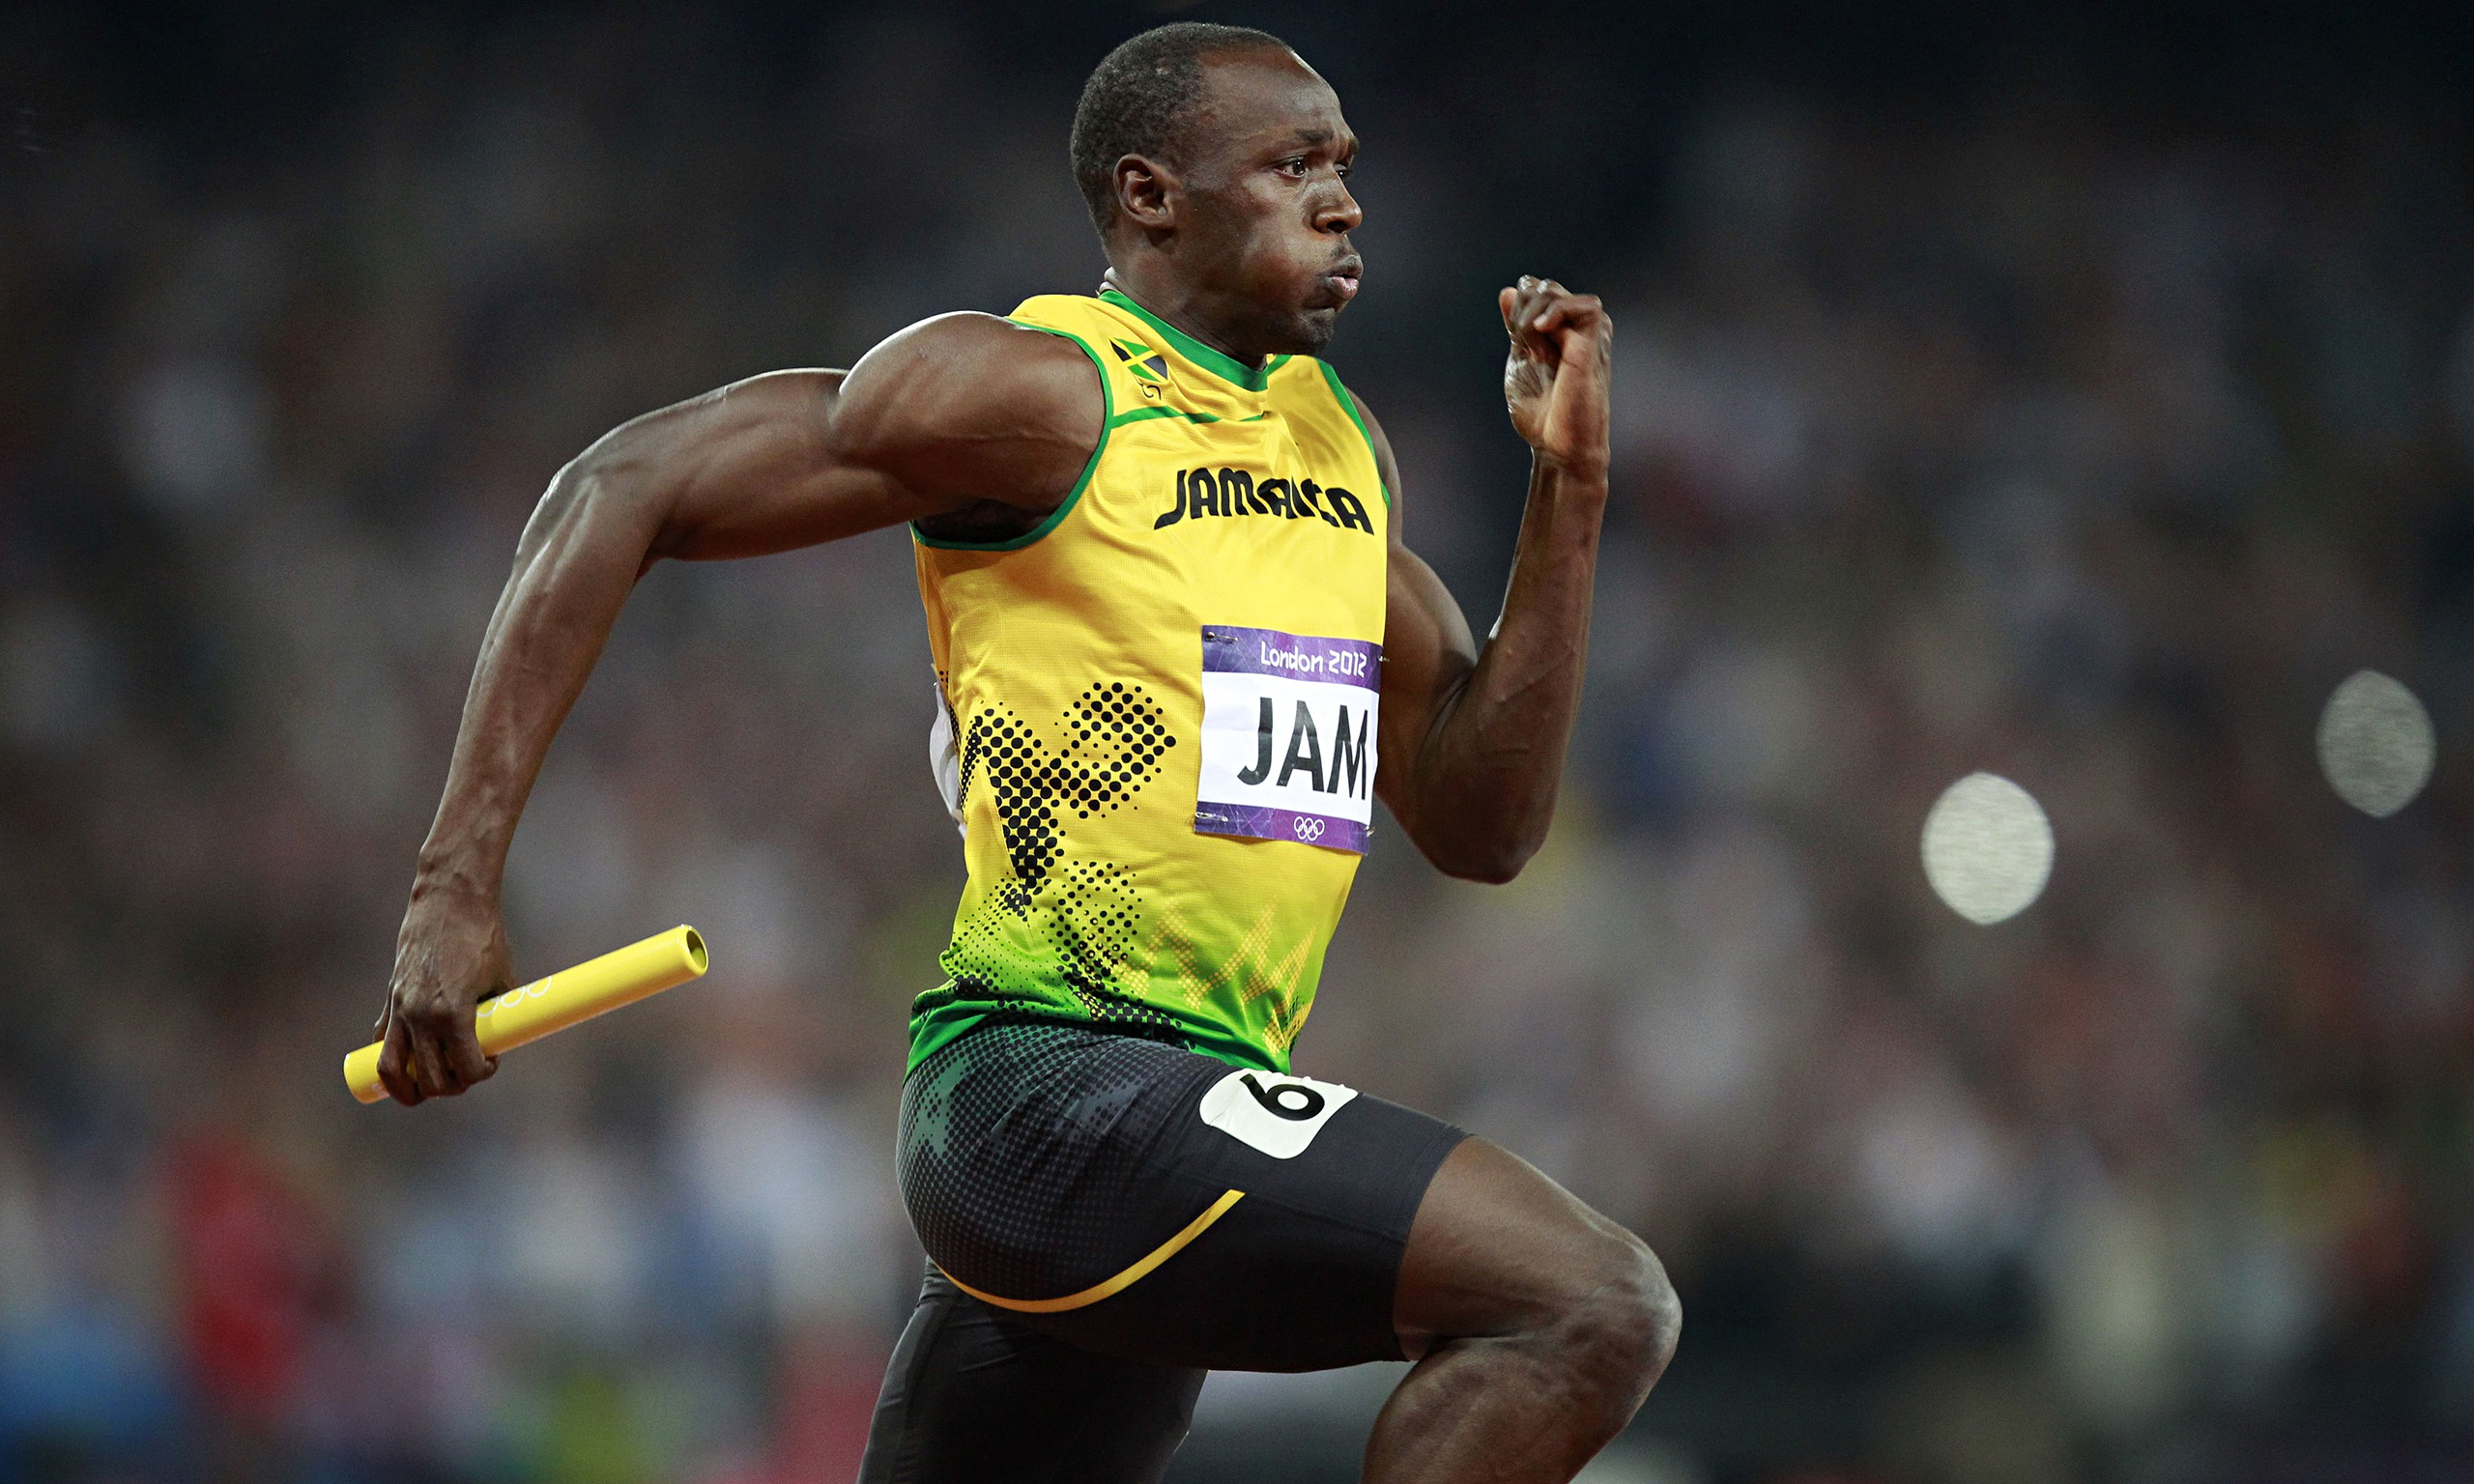 Why are Jamaicans so good at sprinting? | Michael Brooks ...